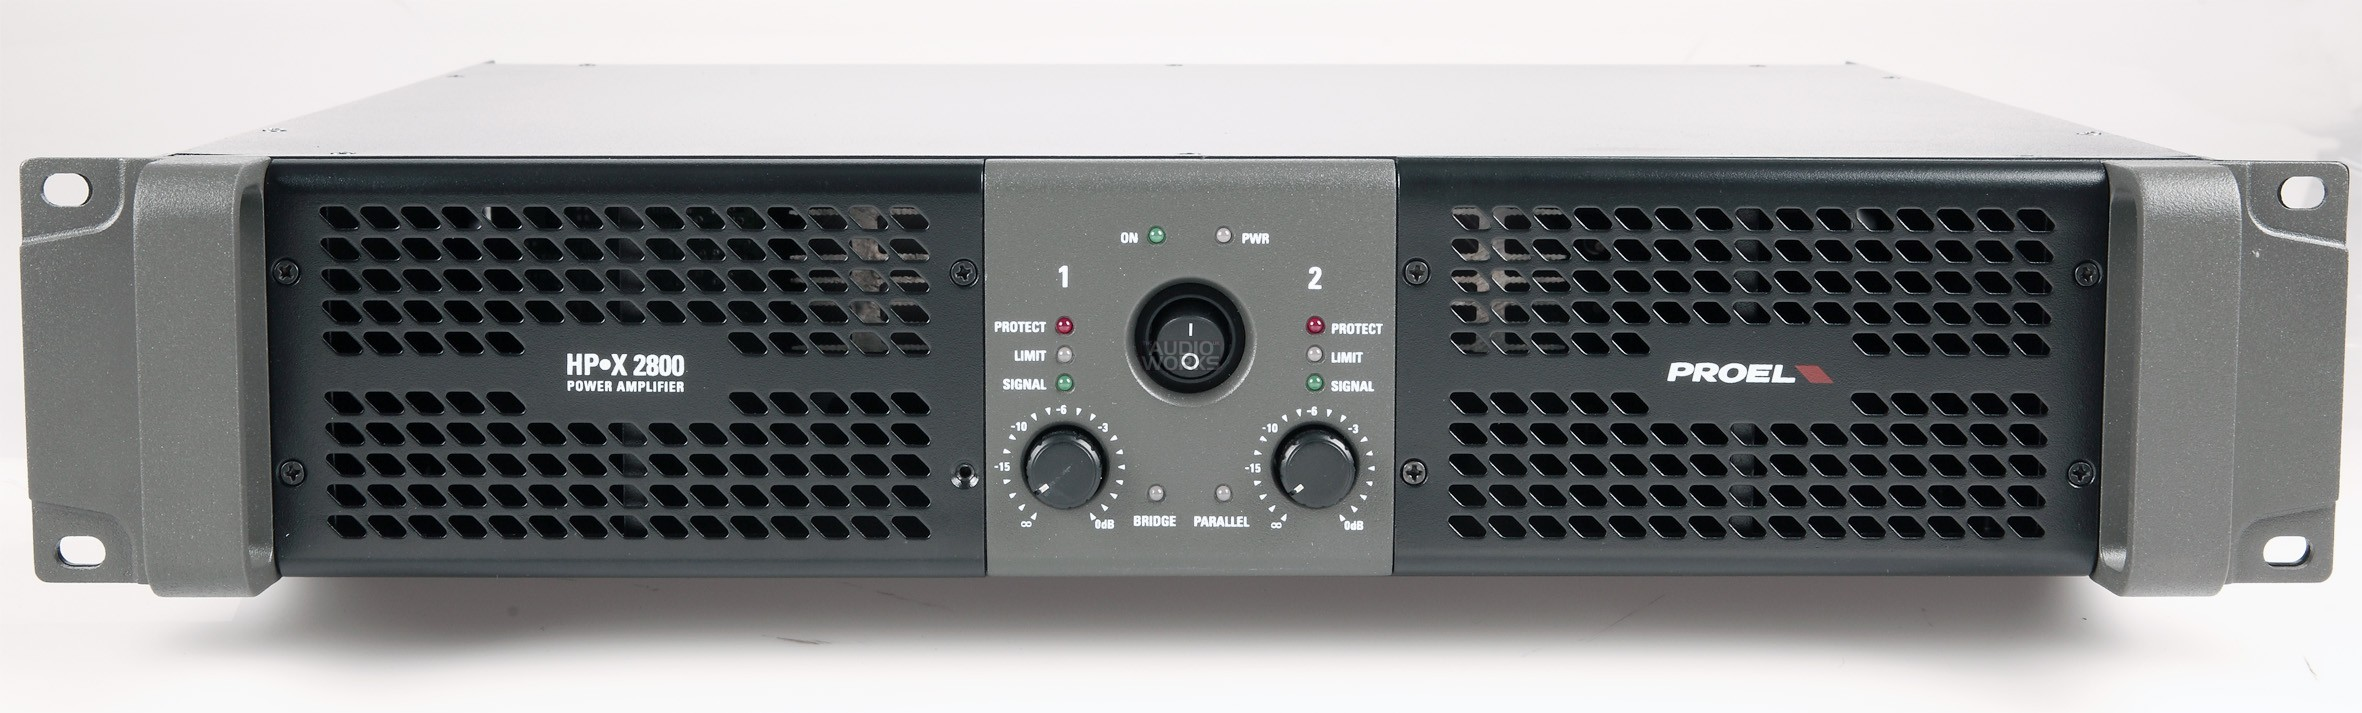 PROEL HPX2800 2800W PROFESSIONAL POWER AMPLIFIER